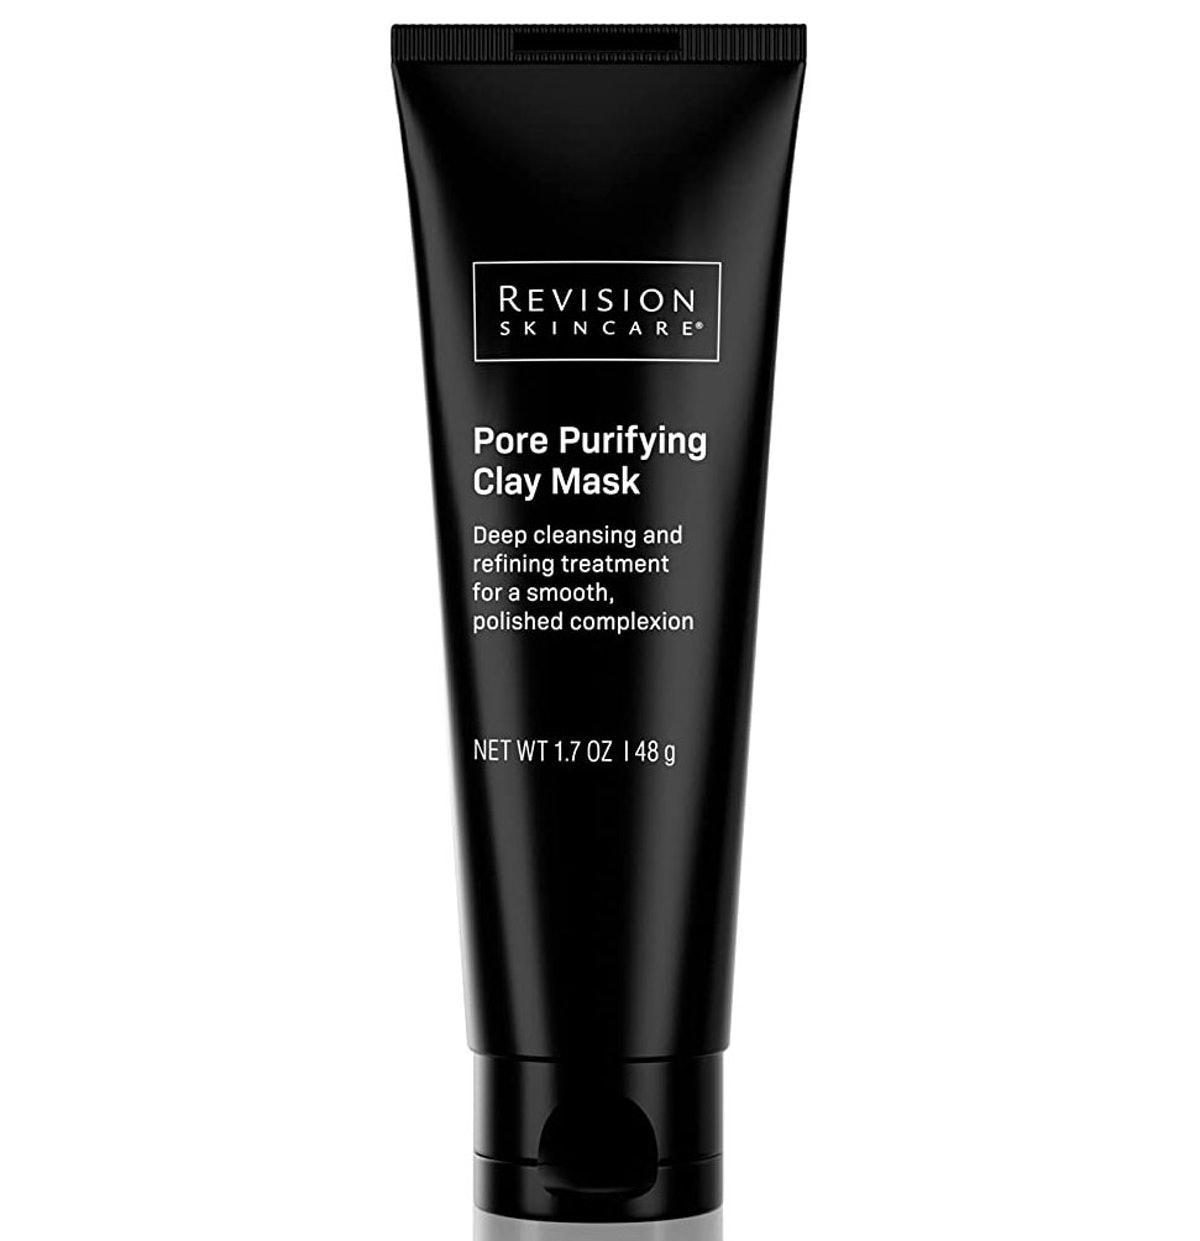 Revision Skincare Pore Purifying Clay Mask